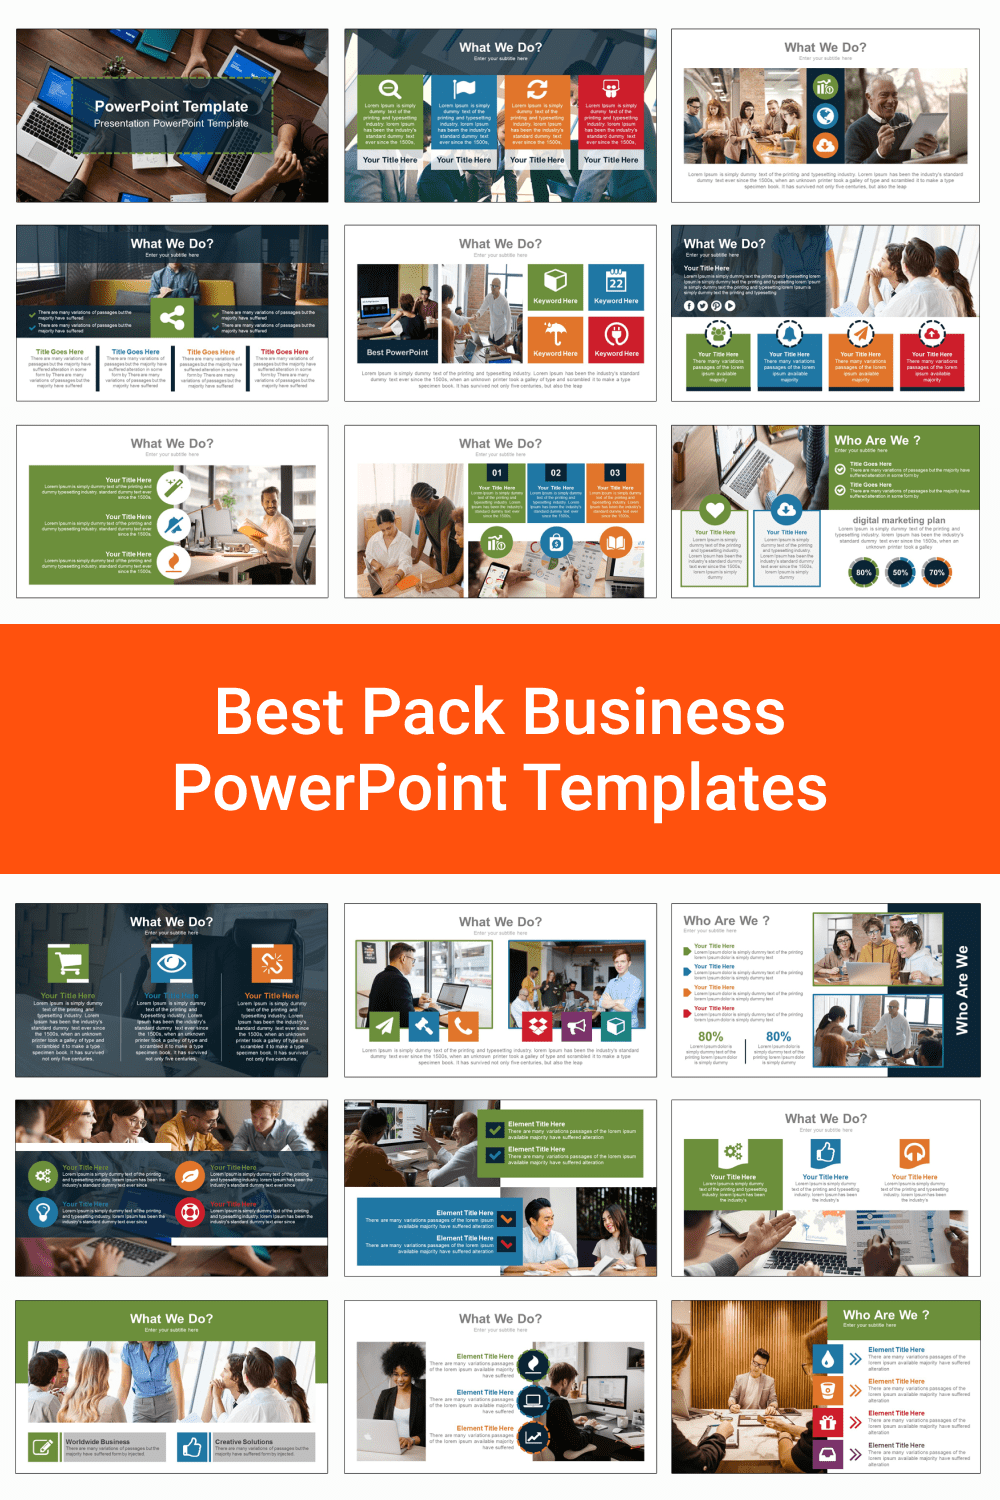 Best Pack Business PowerPoint Templates.